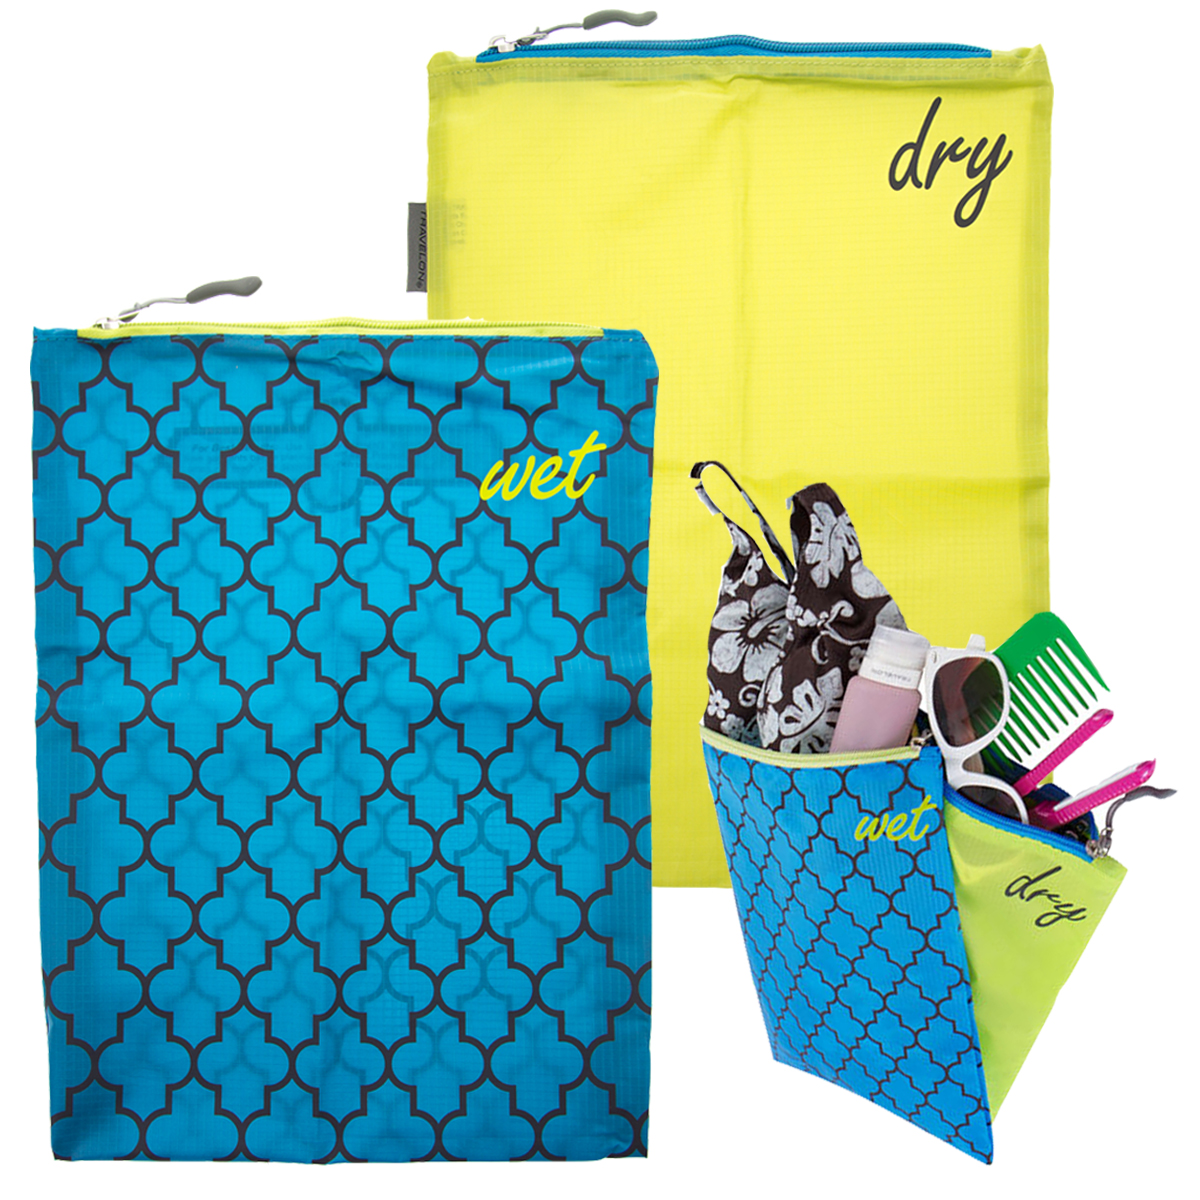 4pc Travelon Wet & Dry Bags Set Water-Resistant For Baby Travel Beach Bikini Diapers Gym